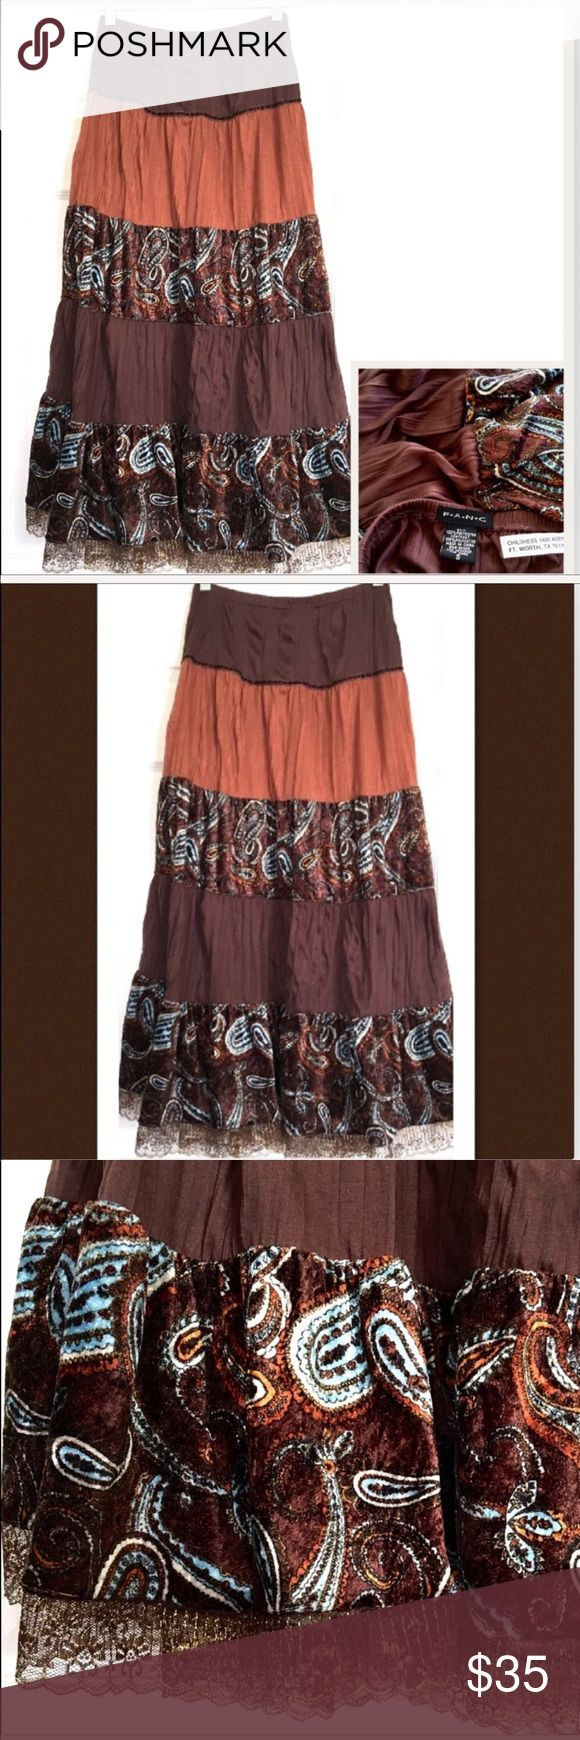 "rare fang Vintage boho gypsy skirt XS maxi FANG gypsy skirt, in gorgeous chocolate brown and copper tones, with layers of velvet print, and metallic lace trim. This skirt has clearly been taken in at the waist, so I am listing it as an XS, please see photos of the alteration. This beautiful skirt has a life of its own, it is worn, and shows minor signs of a life well lived, but is still absolutely gorgeous, and worthy of a new home. XS waist = 28"" thru 30"" comfortably, length = 34"", buyer…"